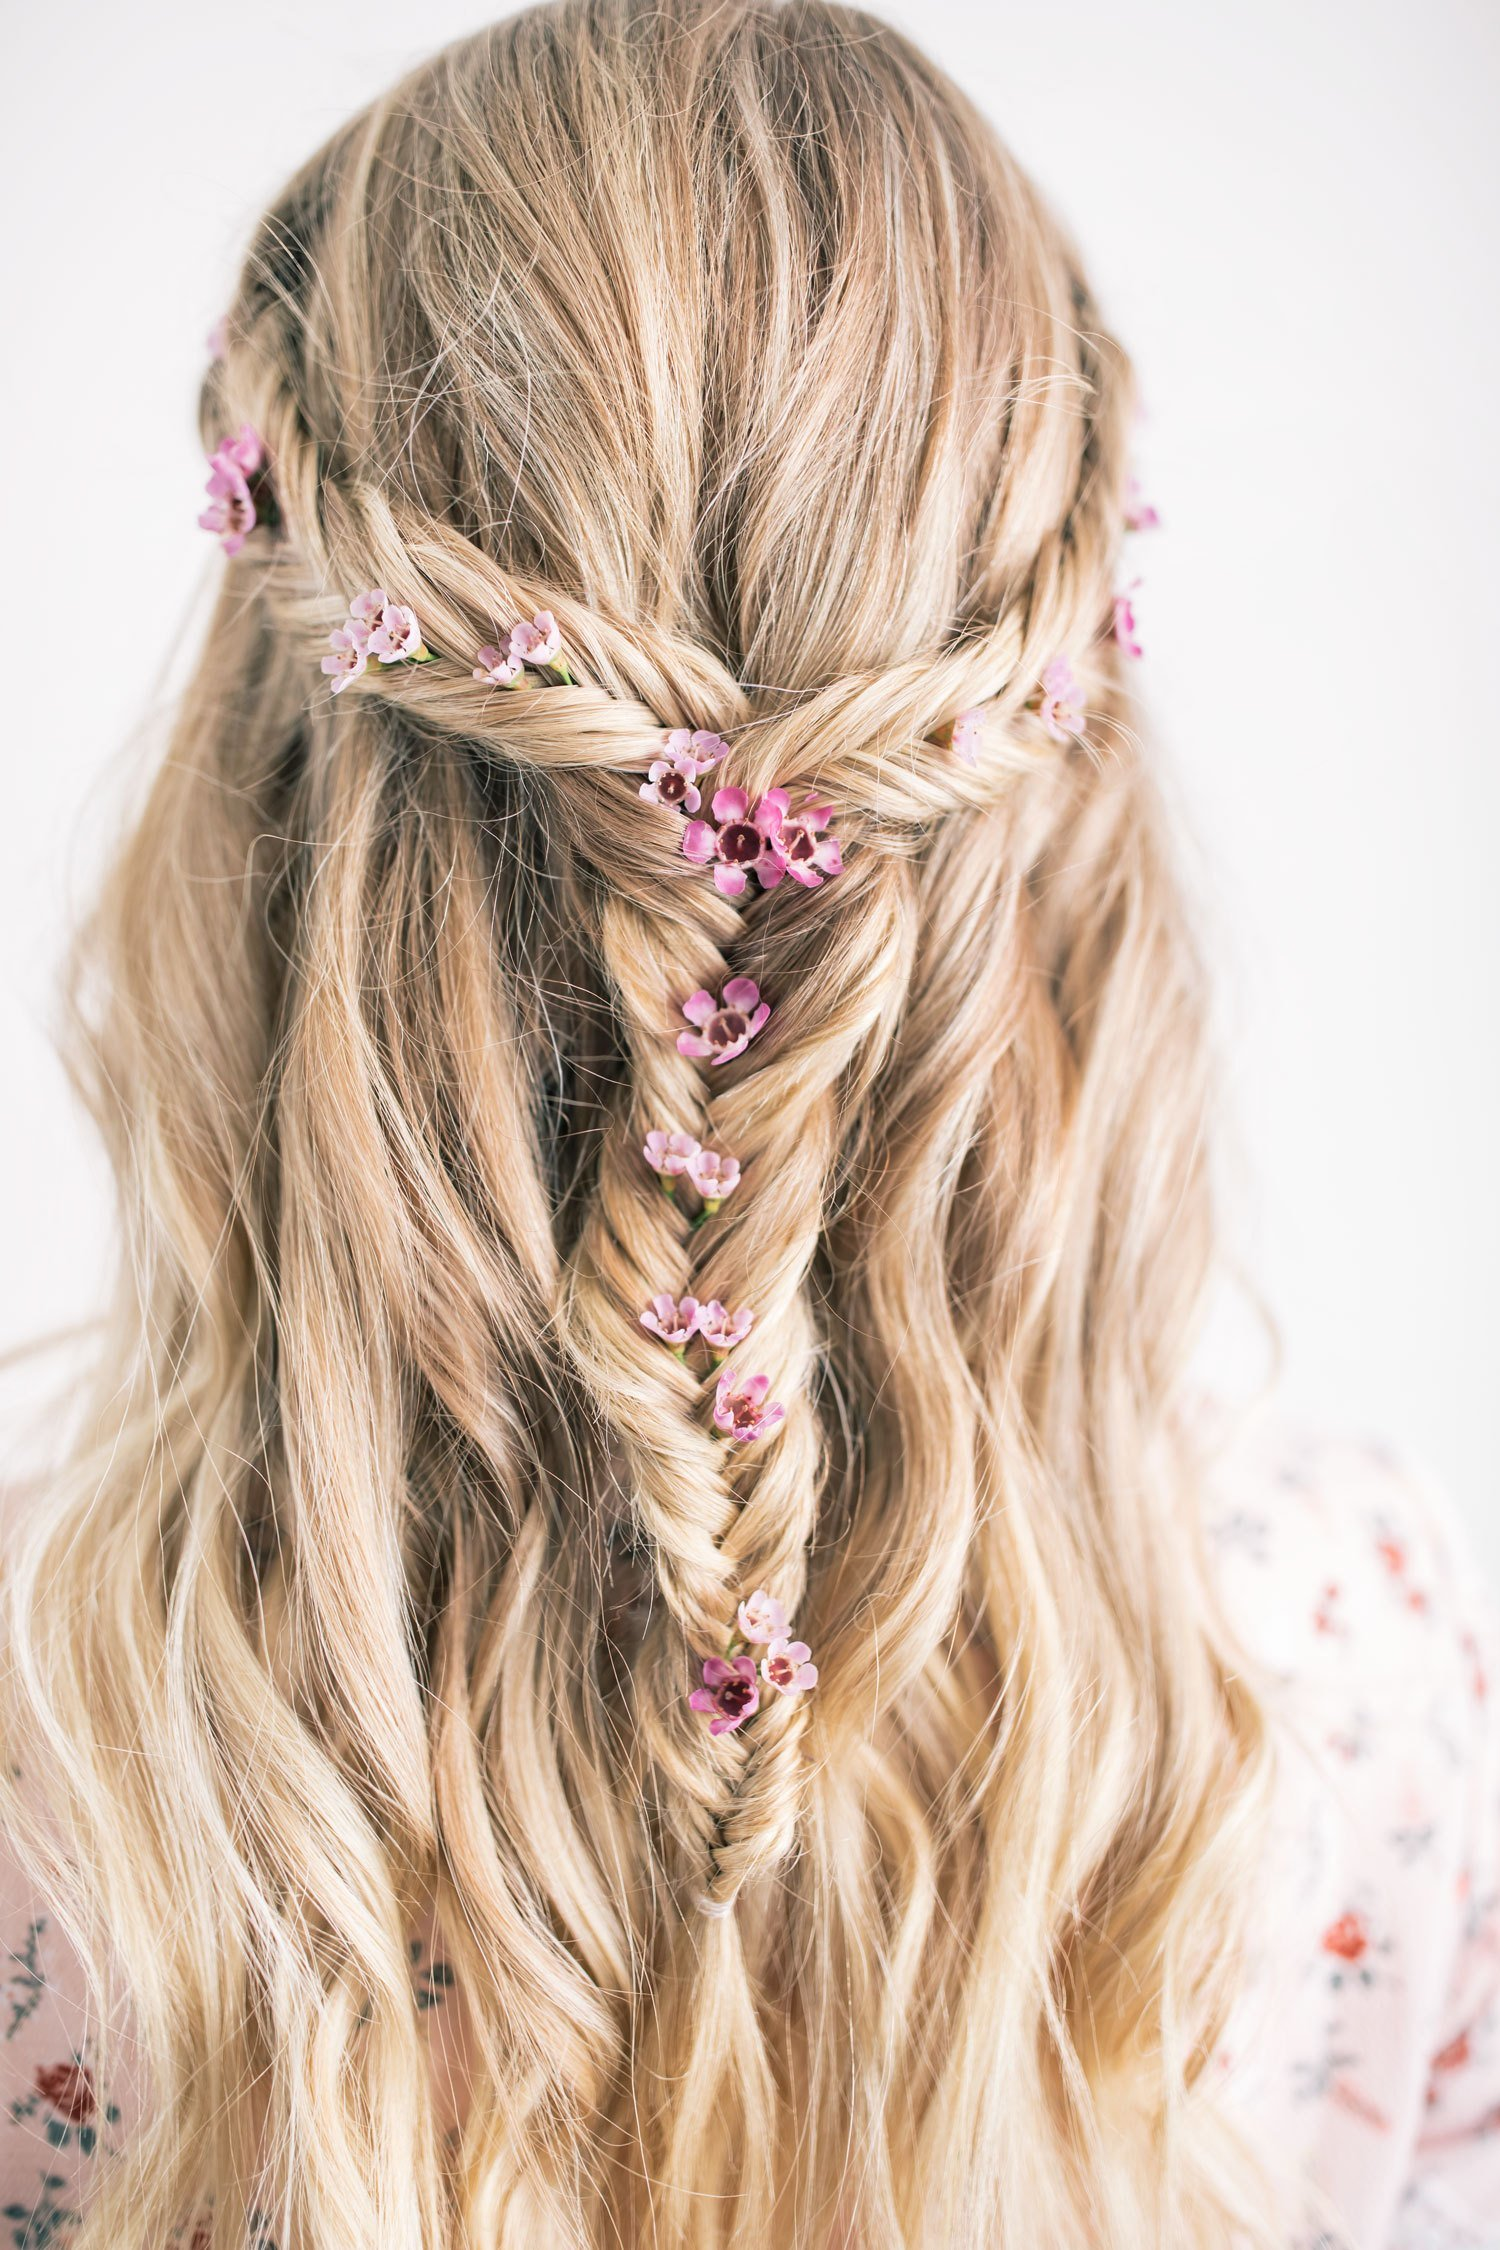 The Best The Prettiest Festival Hairstyle The Blondielocks Life Pictures